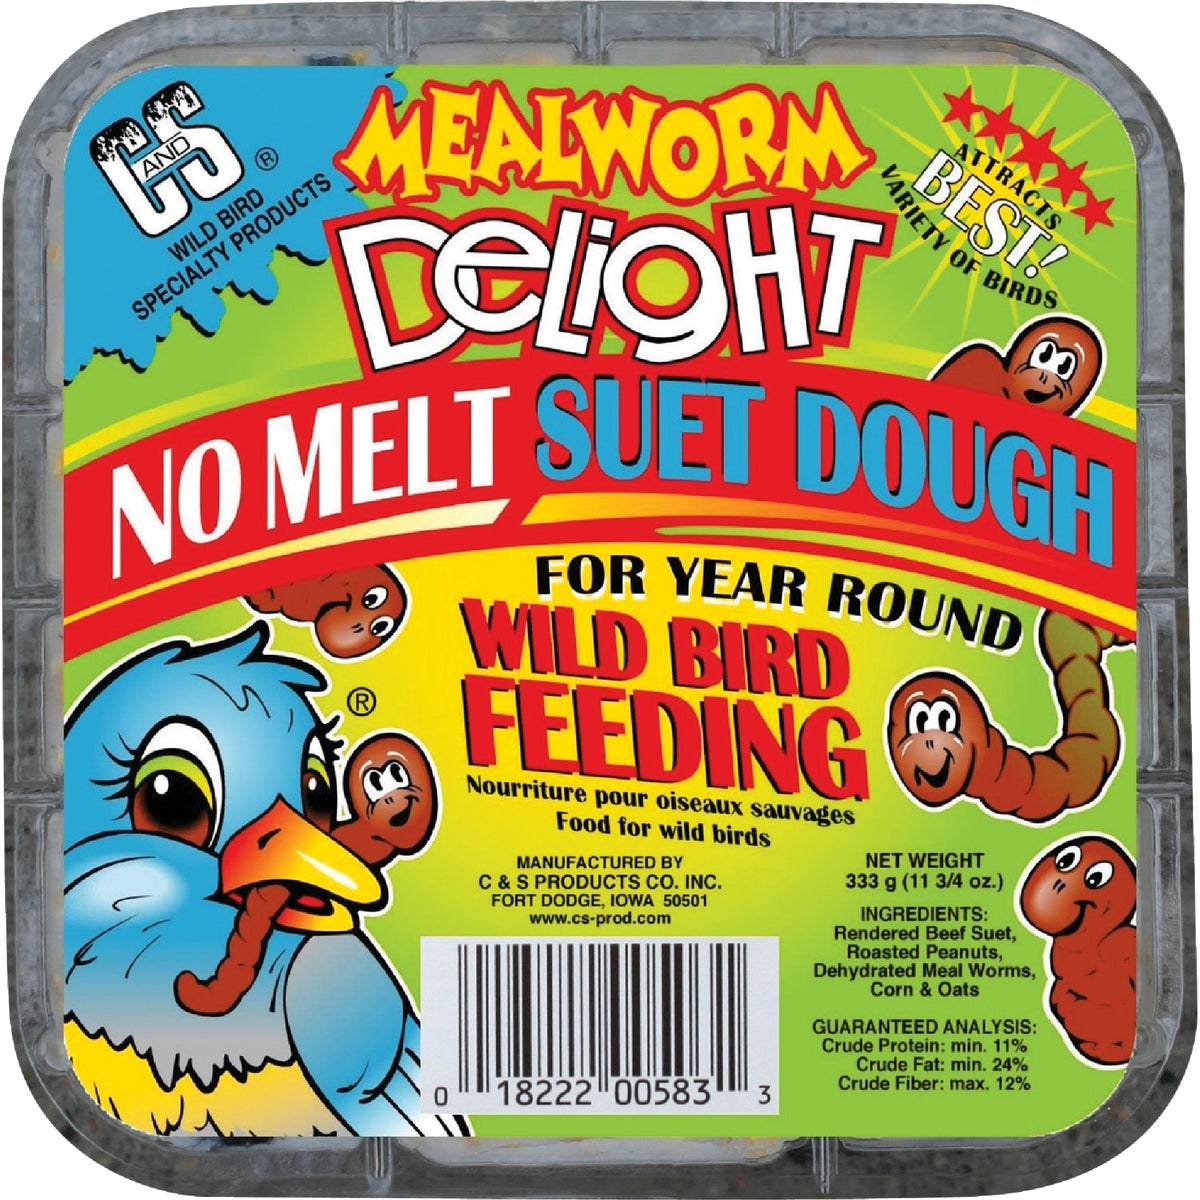 MEALWORM DELIGHT SUET - CS12583 by C & S Products Inc